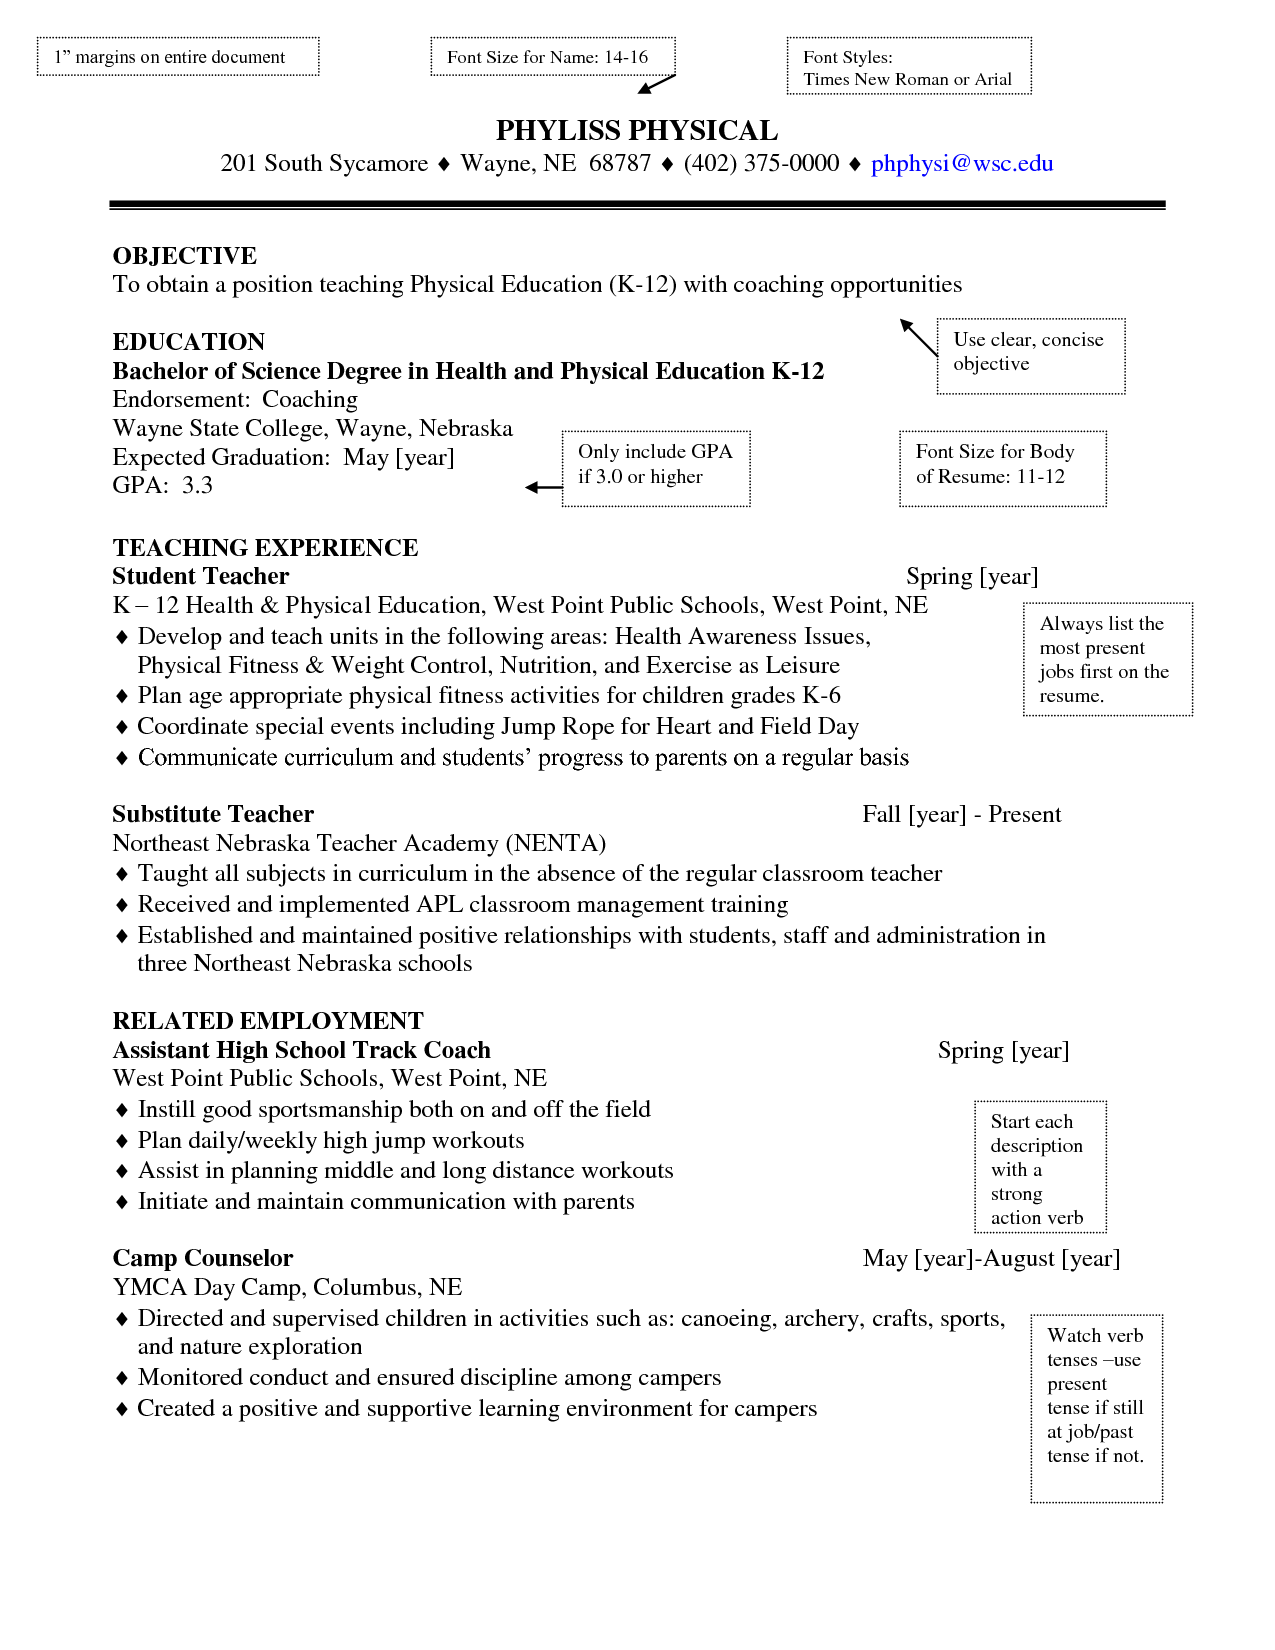 Samples Of Special Education Teacher Resumes Cover Latter Sample